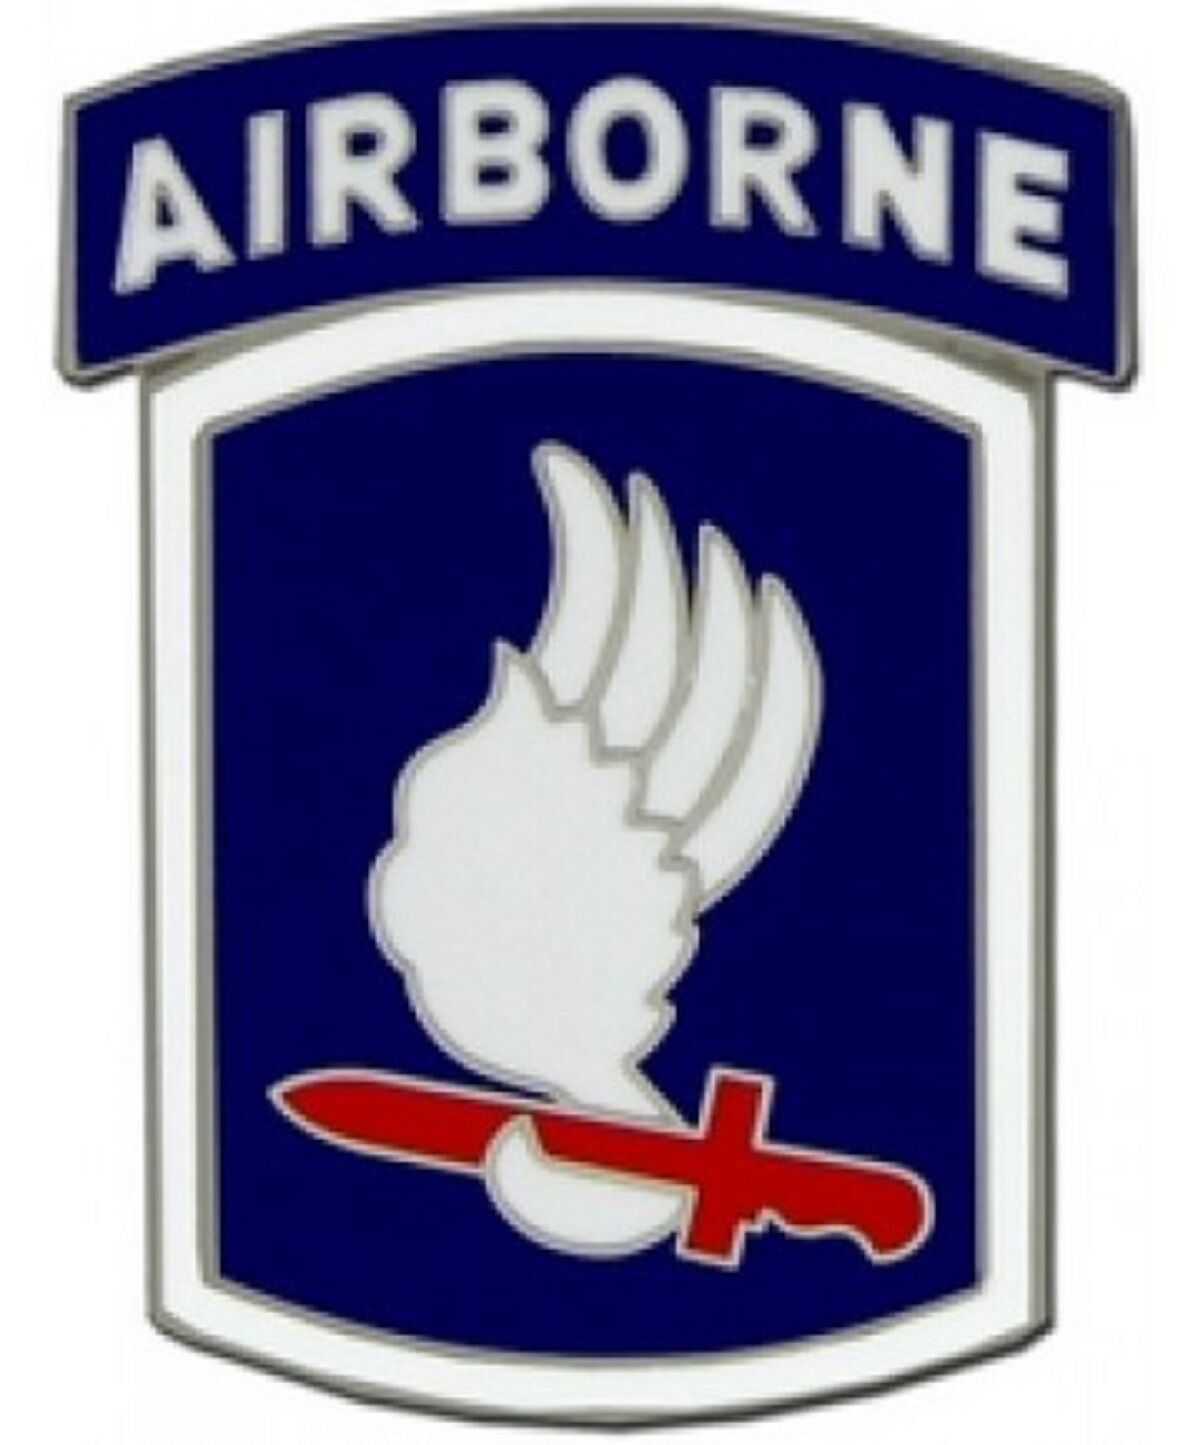 Primary image for US Army 173rd Airborne Division Combat Service Badge (2 inch)